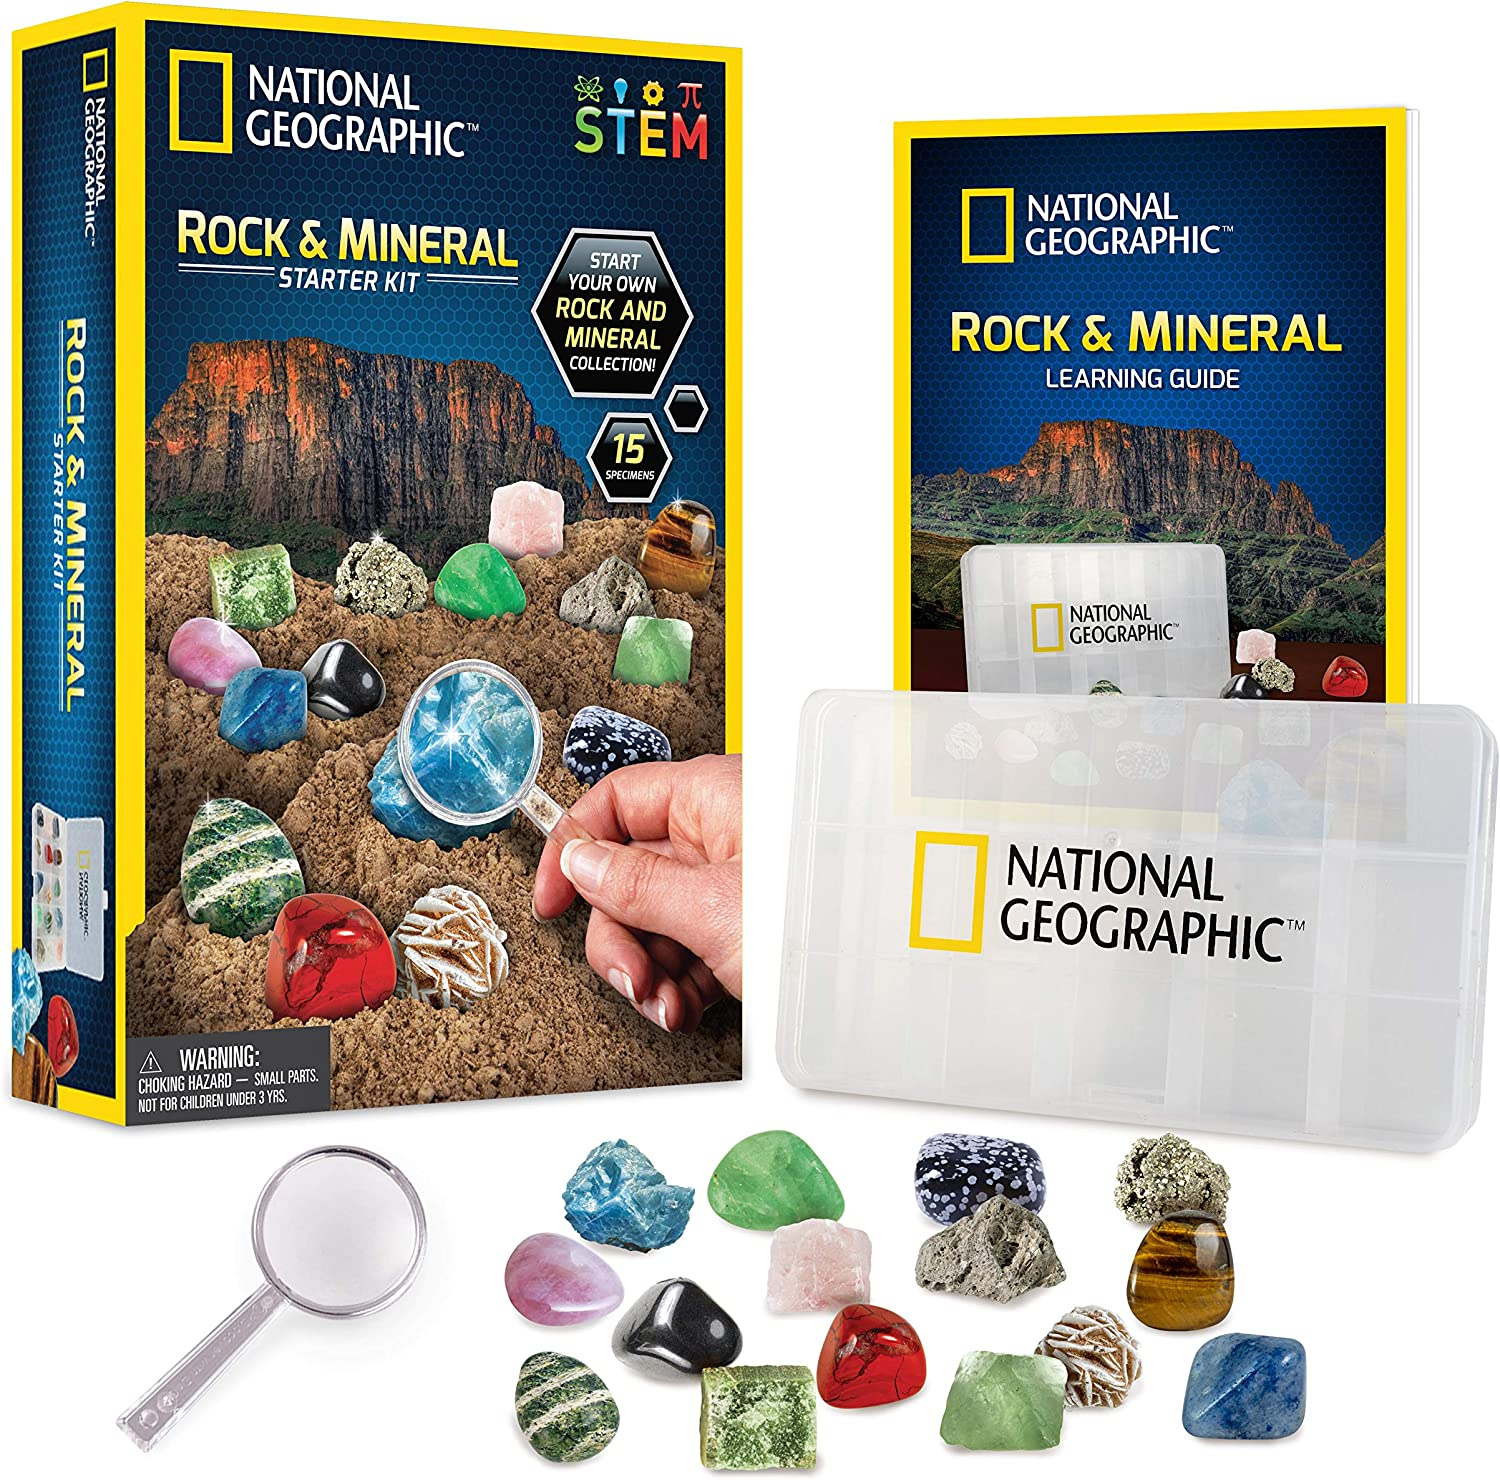 NATIONAL GEOGRAPHIC Rocks and Minerals Education Set – 15-Piece Rock Collection Starter Kit with Tiger's Eye, Rose Quartz, Red Jasper, and More, Display Case and Identification Guide